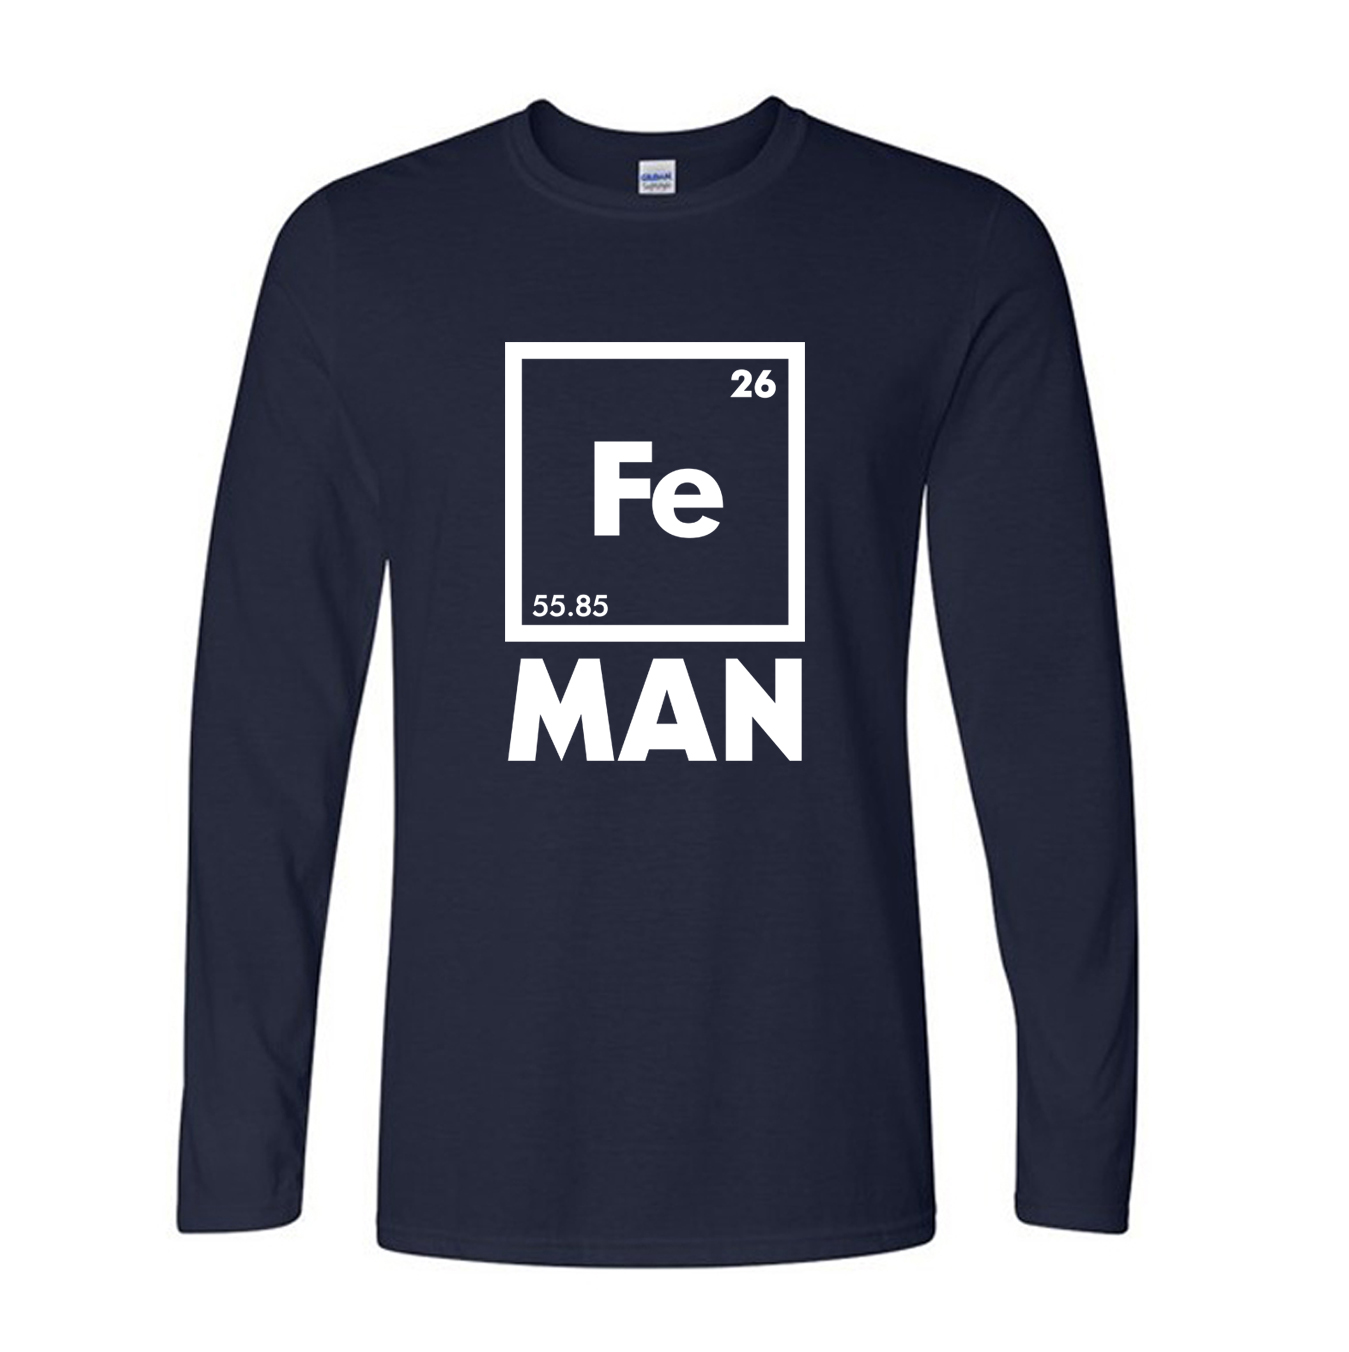 Autumn long sleeve cotton tops iron science t shirt funny autumn long sleeve cotton tops iron science t shirt funny chemistry shirt fe periodic table tee shirt fashion creative t shirts in t shirts from mens gamestrikefo Gallery